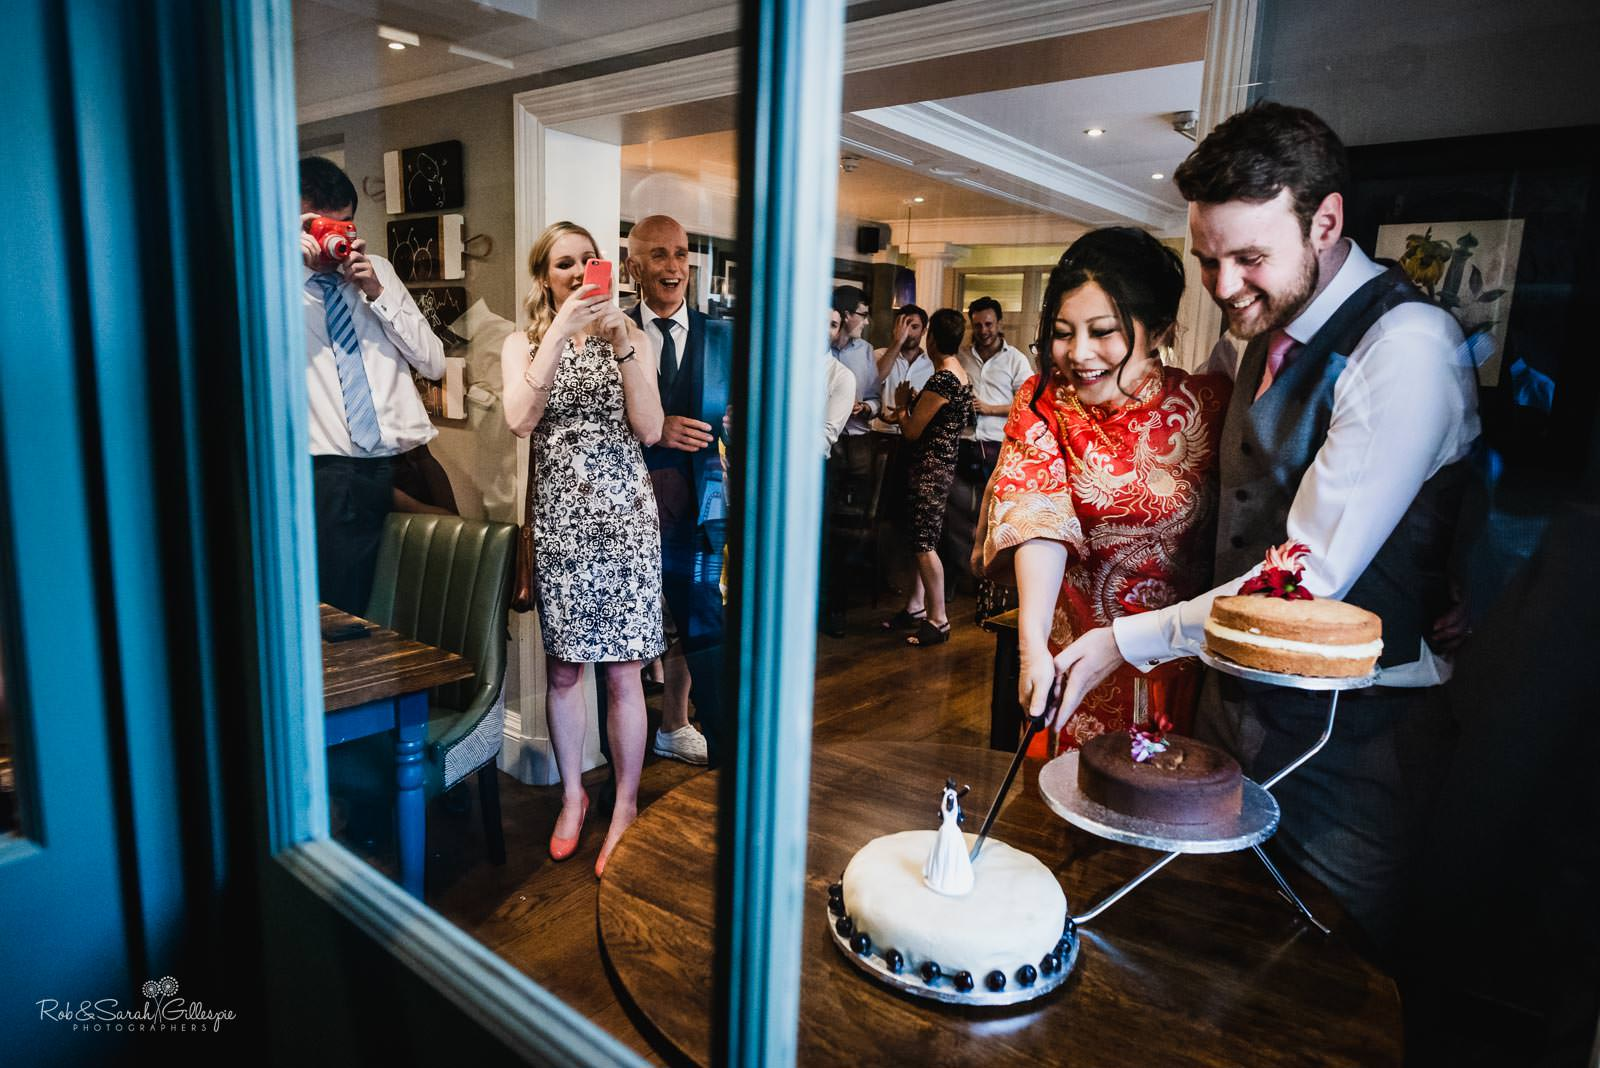 Bride and groom cut wedding cake at Stratford upon Avon Townhouse